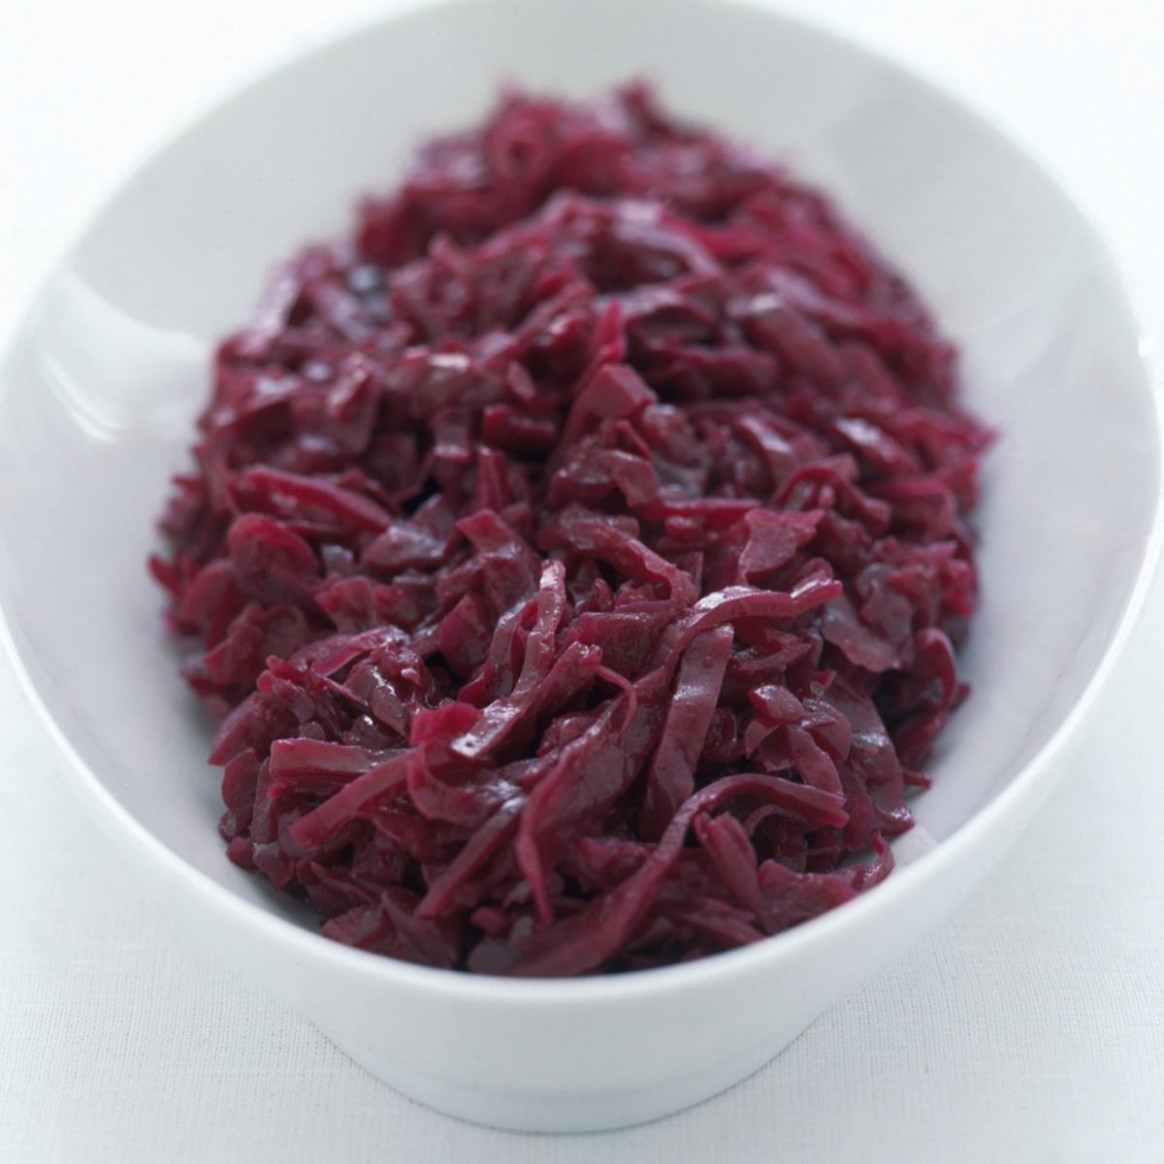 Traditional Braised Red Cabbage with Apples | Recipes ...